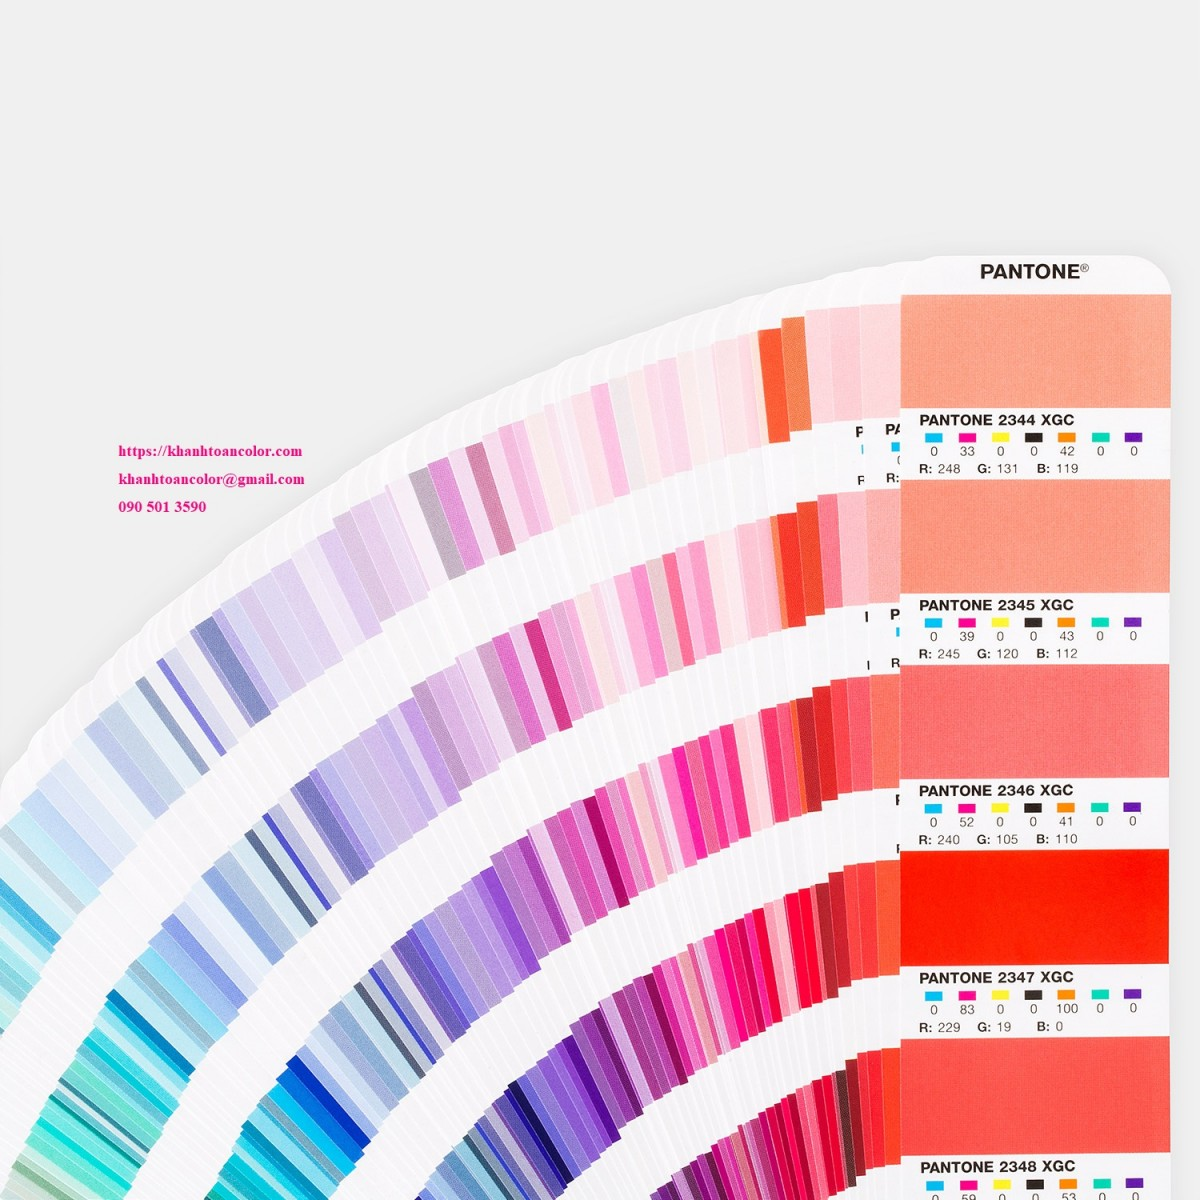 pantone mau moi nhat GG7000-pantone-pms-7-color-process-printing-cmyk-orange-green-purple-fan-guide-extended-gamut-coated-guide-product-2